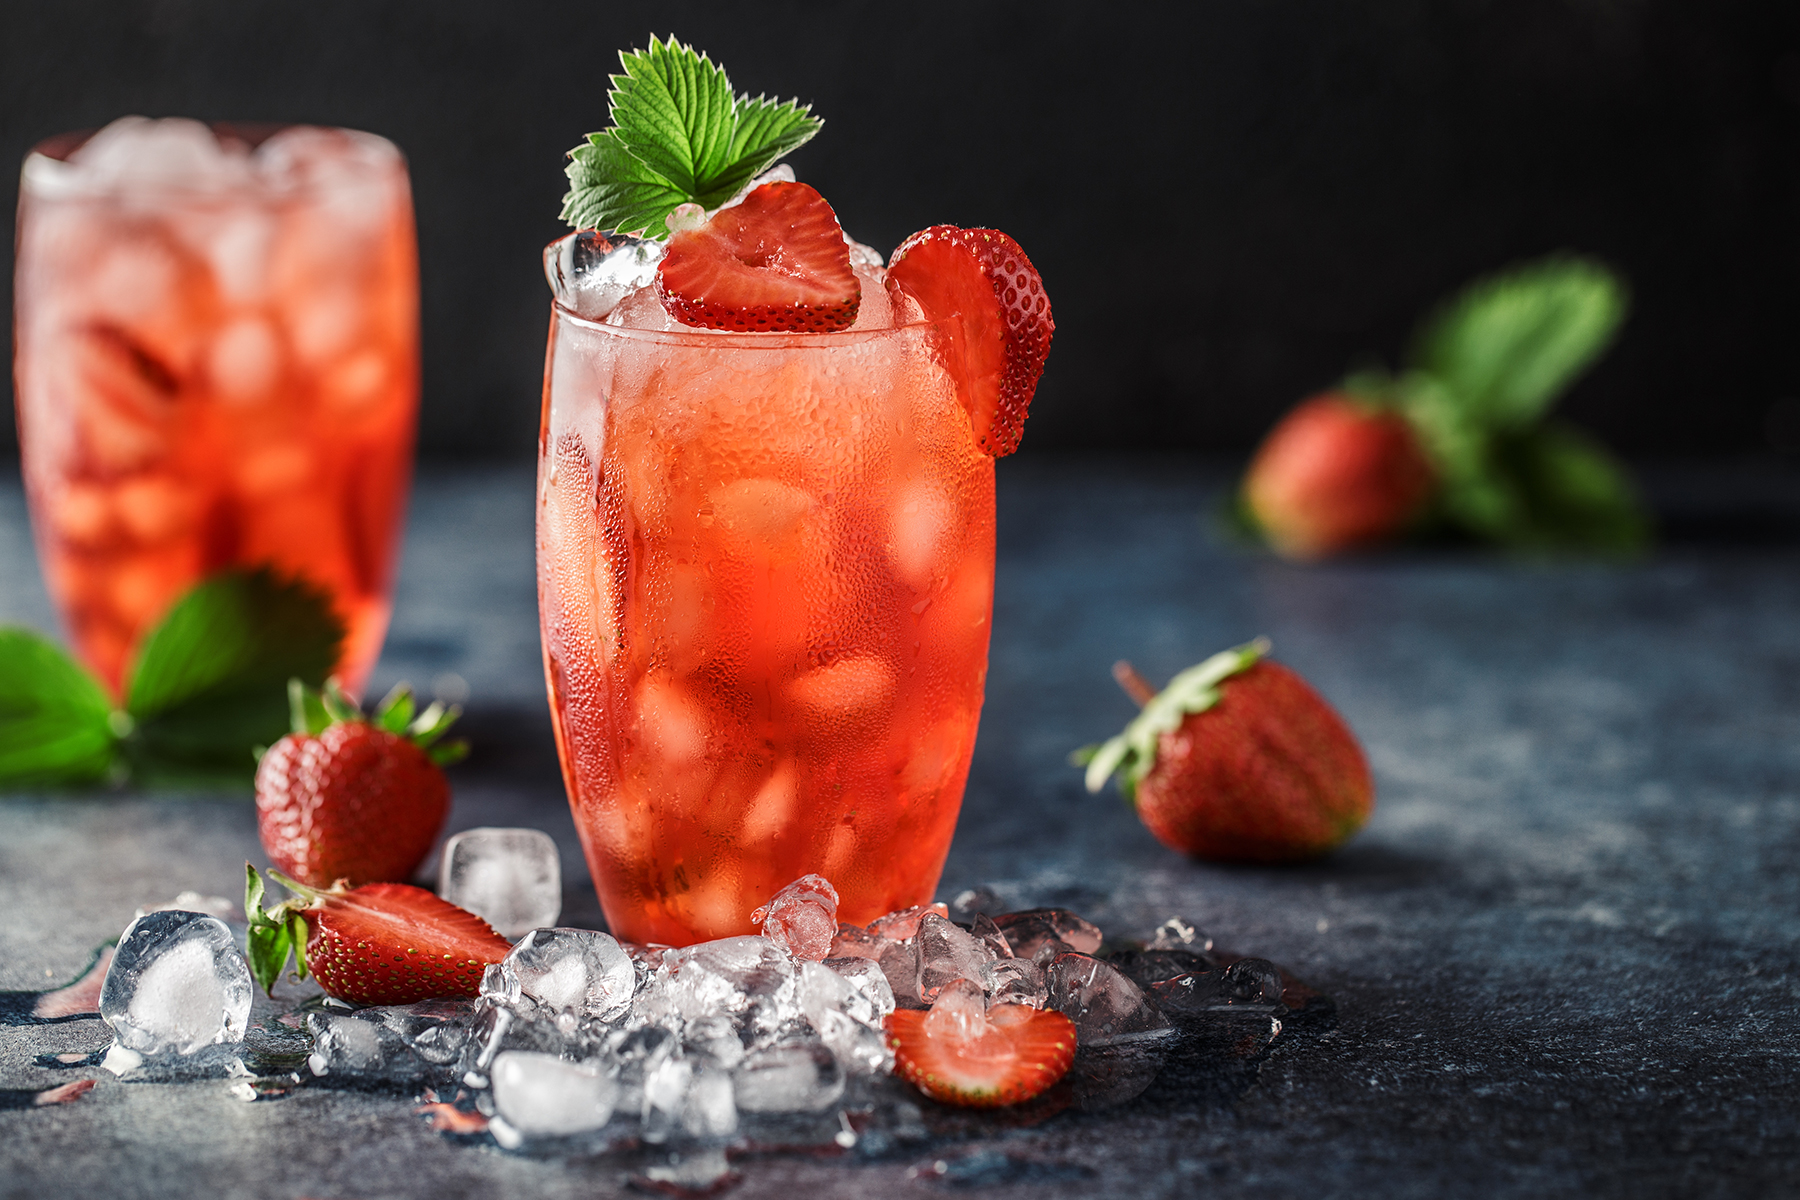 Iced Strawberry Cocktail on table with ice and strawberries next to it